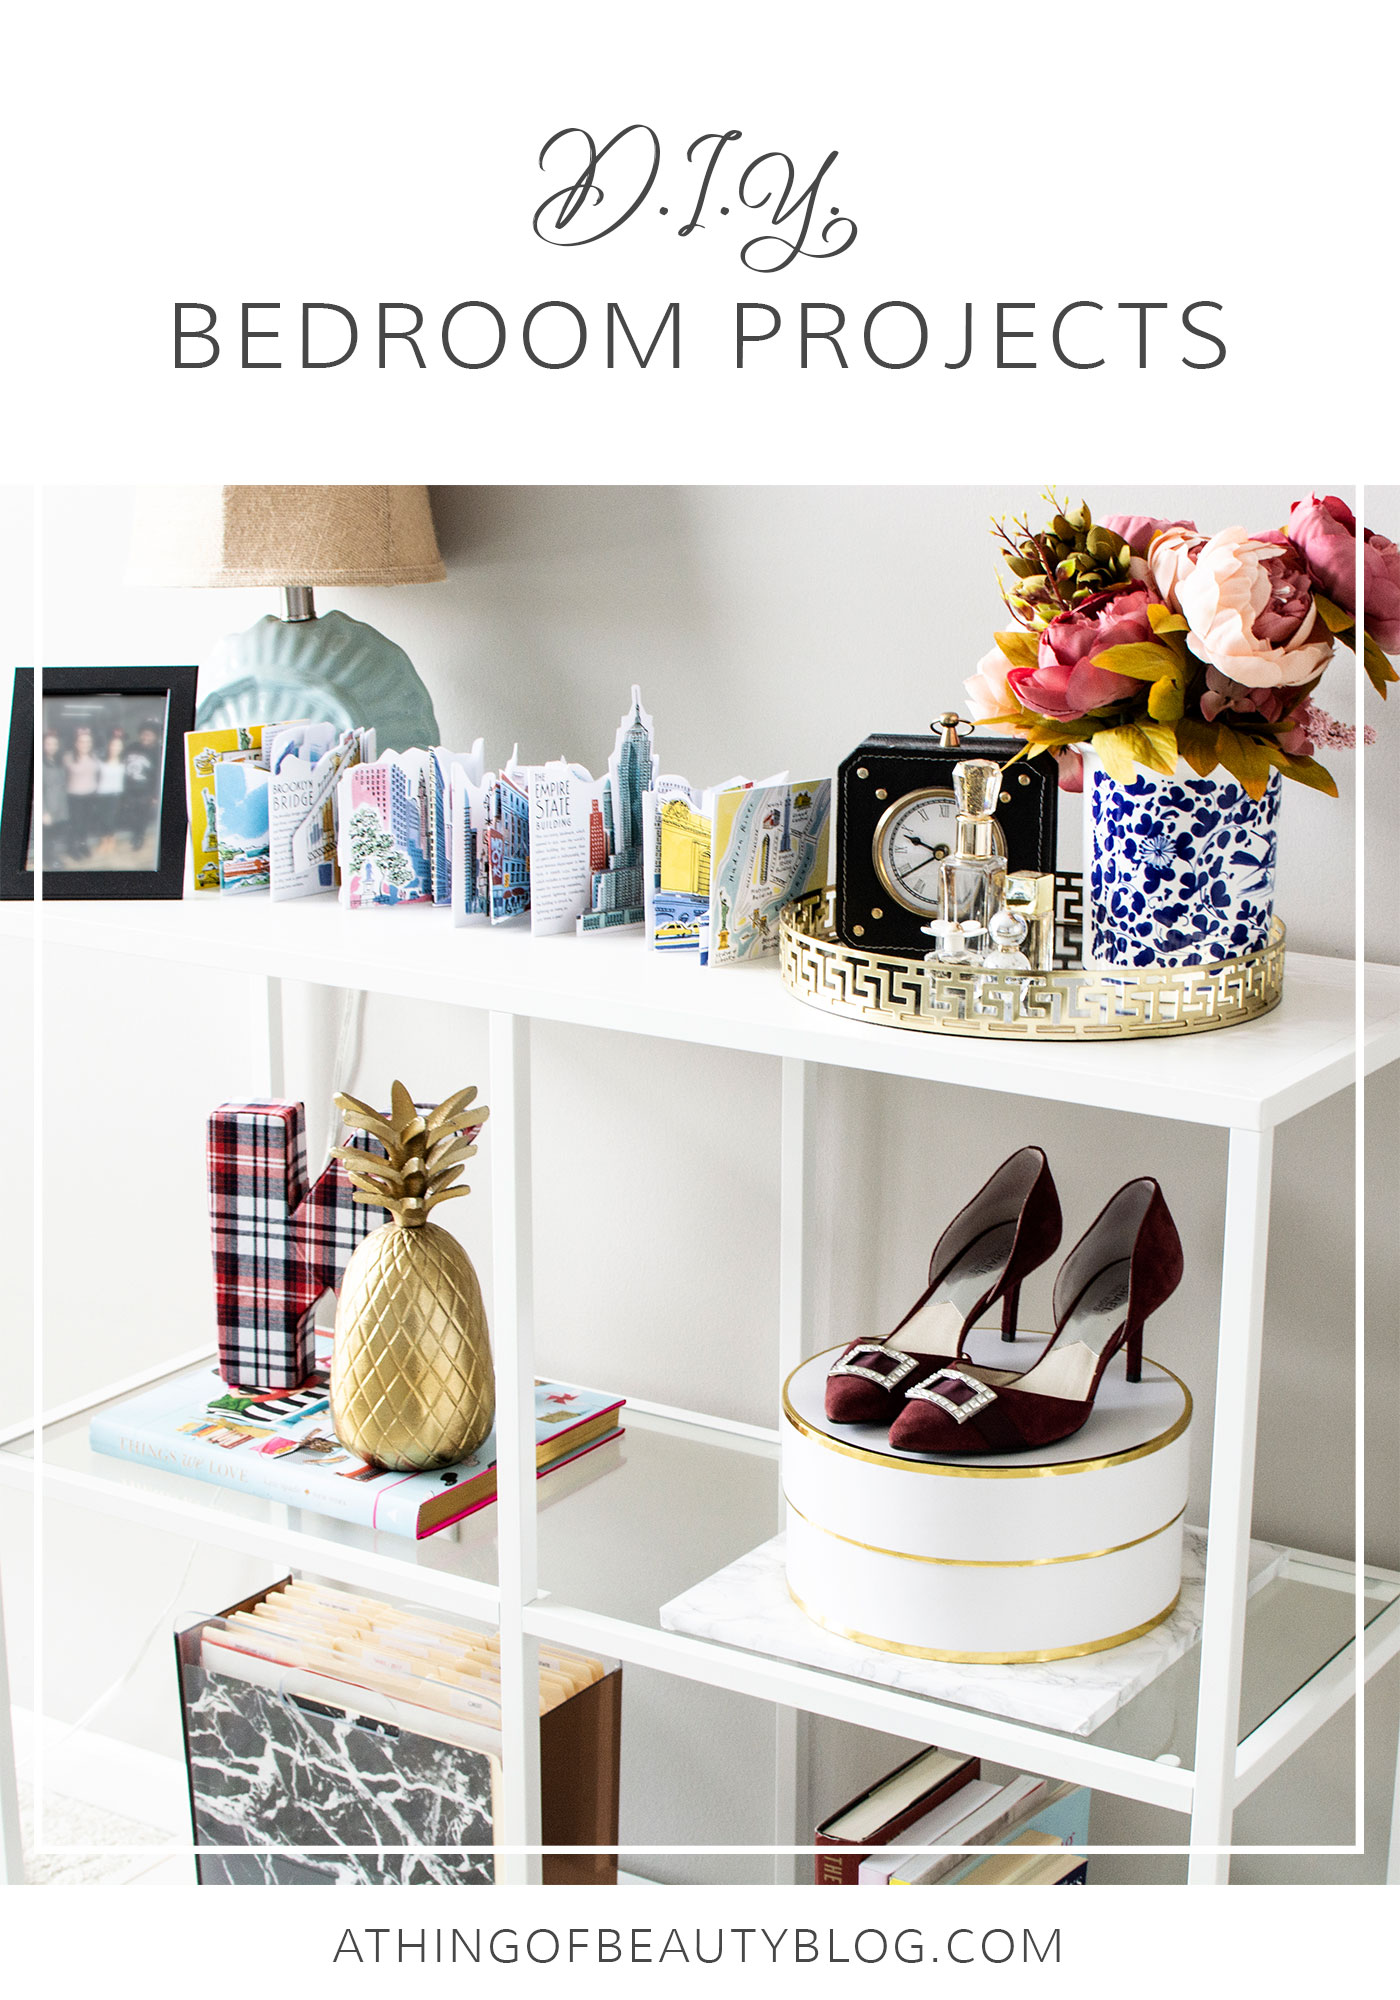 DIY Bedroom Projects to Make Over the Holidays